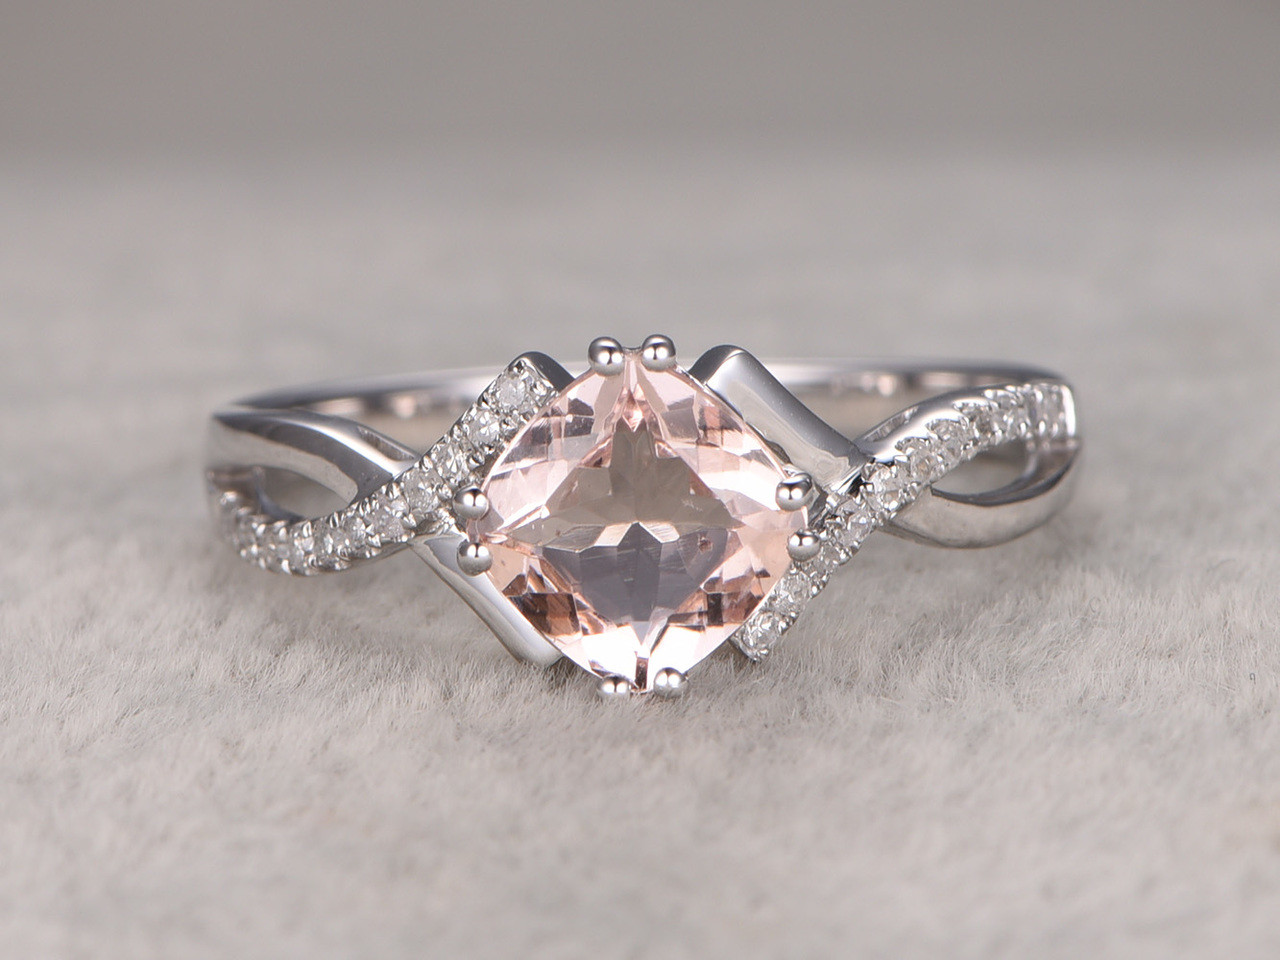 for gift her simulate white solid item synthetic cushion shape in carat from diamond xms ring pink engagement bridal best jewelry gold princess rings